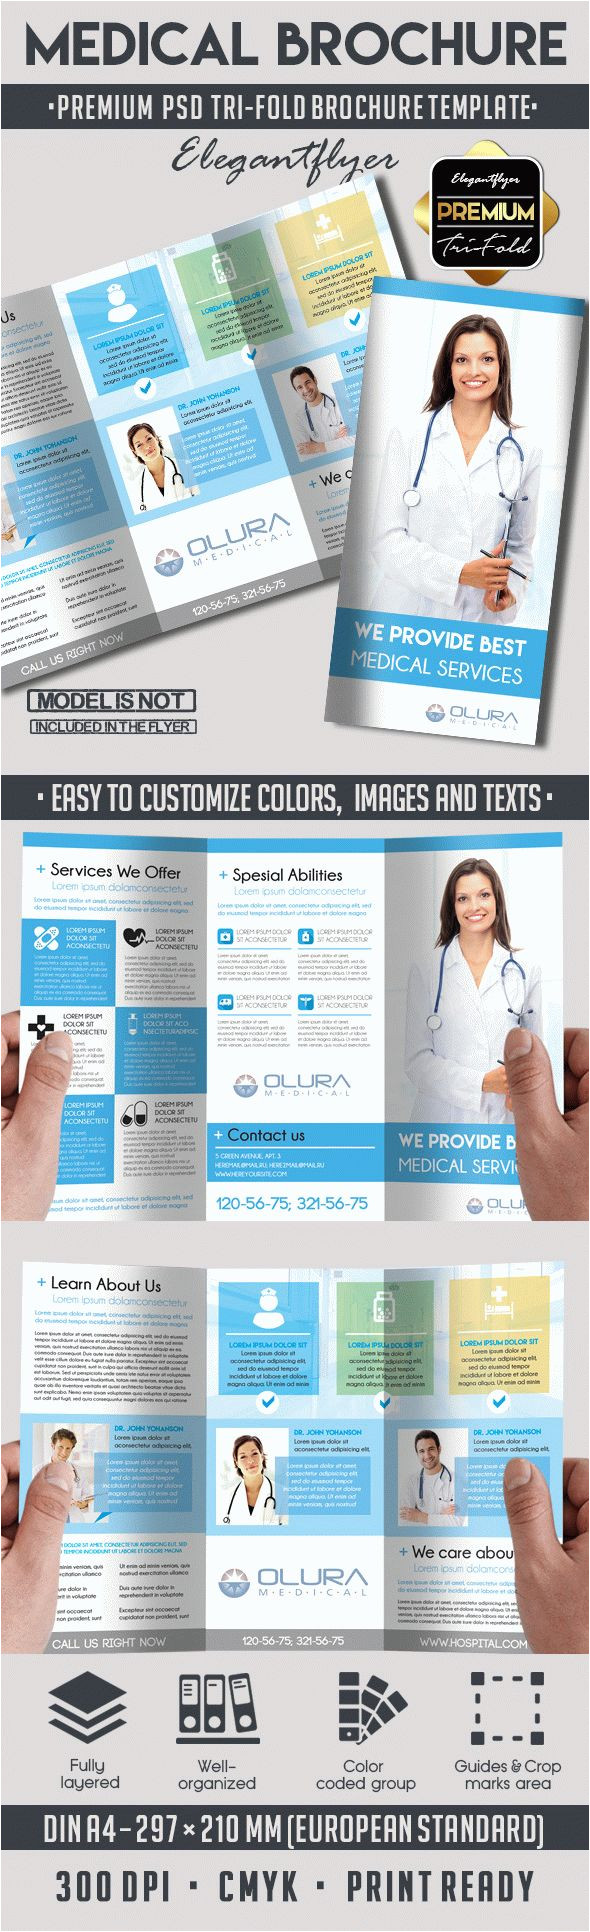 Medical Tri Fold Brochure Templates for Free Emergency Medical Services Tri Fold Brochure by Elegantflyer